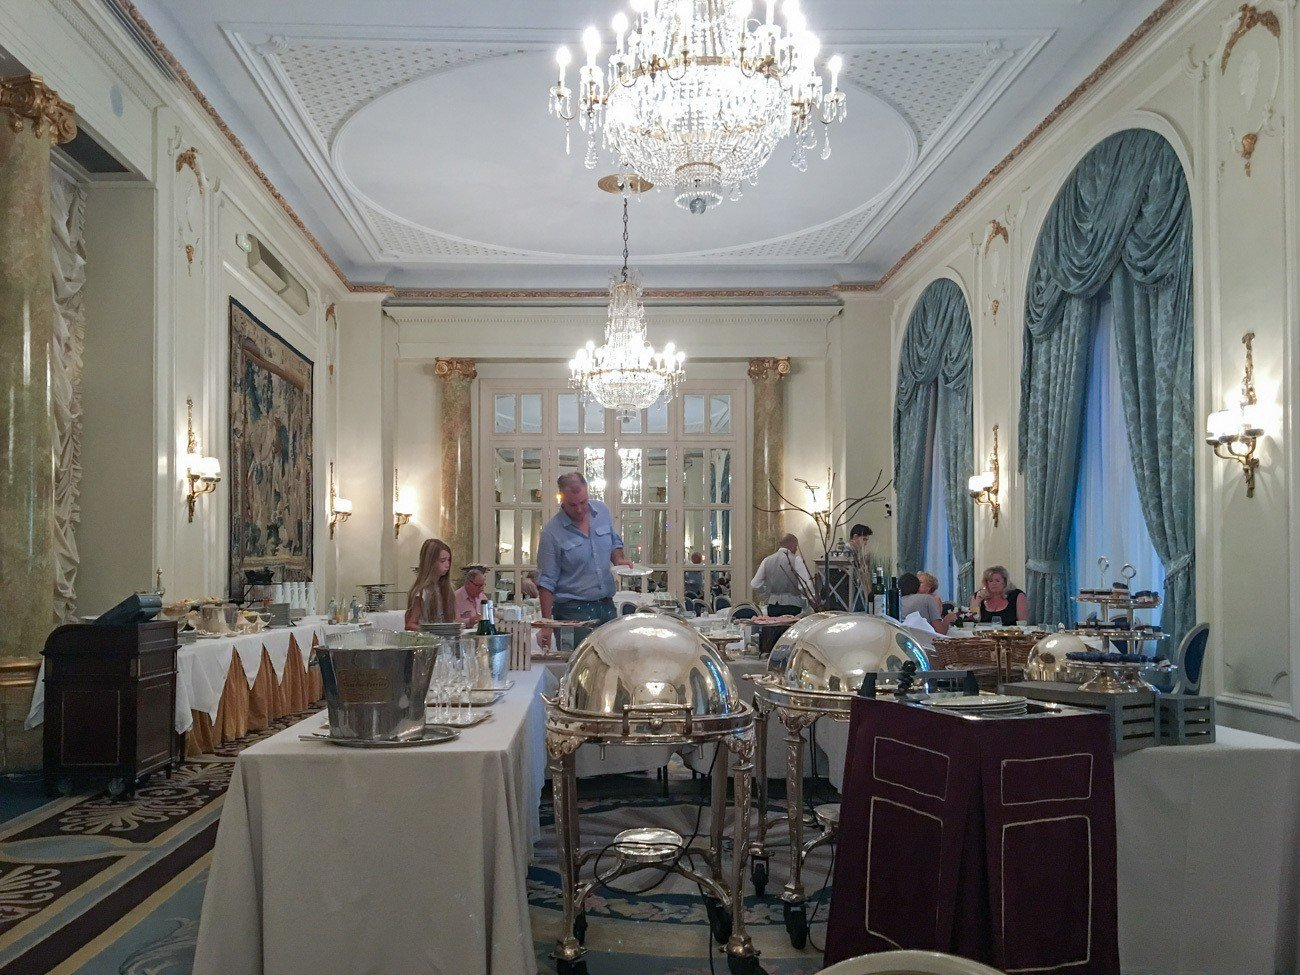 The breakfast buffet at Hotel Ritz, Madrid.